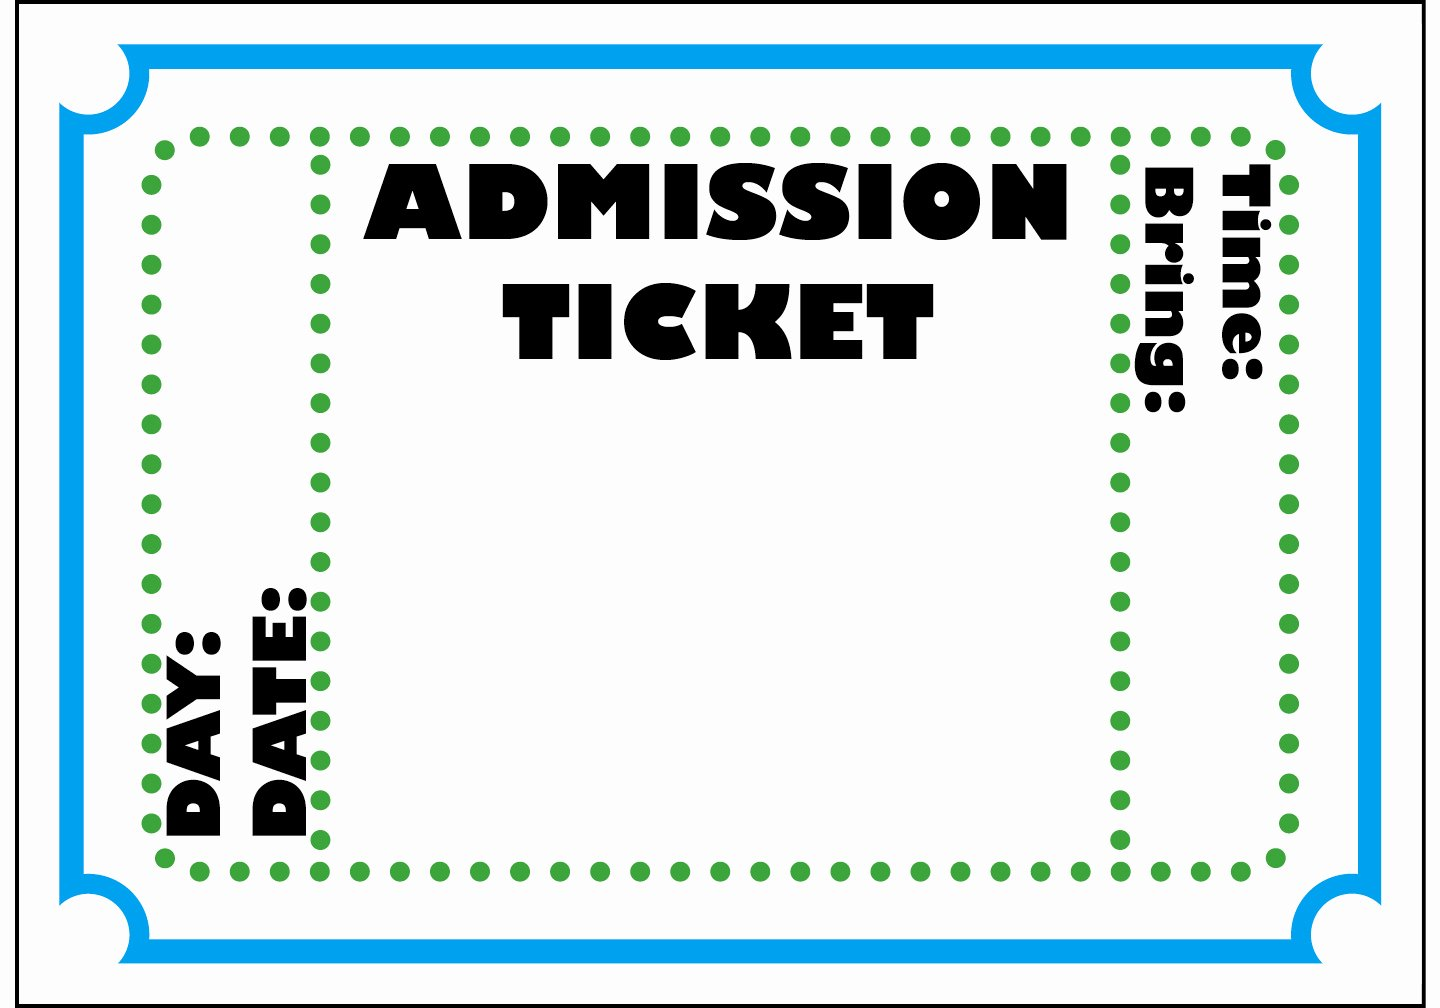 Admission Ticket Template Free Luxury Free Printable Admission Ticket Template Clipart Best